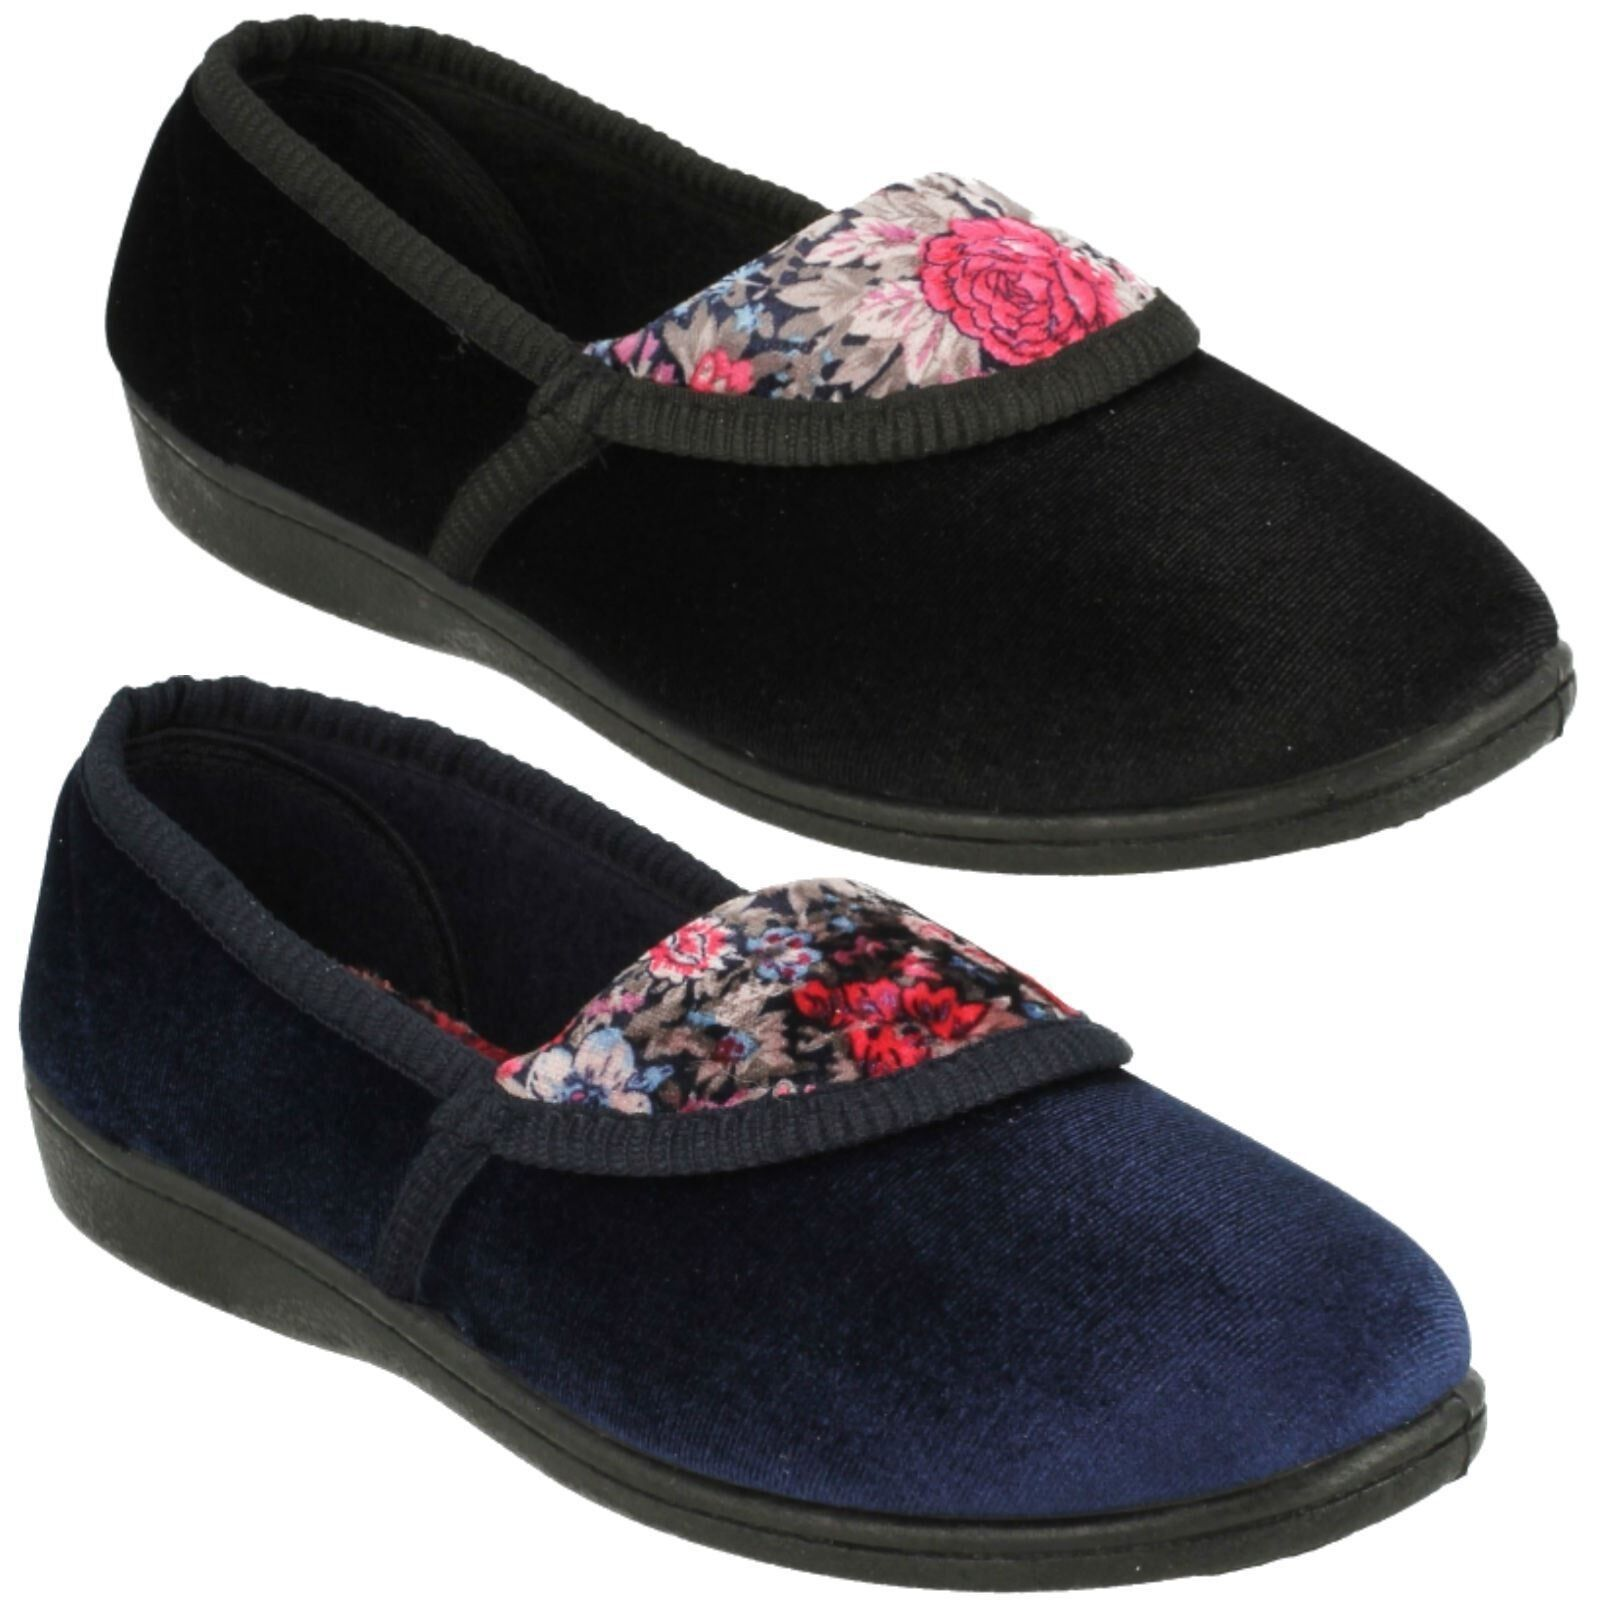 LADIES WOMENS SPOT ON BLACK NAVY SLIPPERS FLORAL DESIGN COMFY QUALITY SLIPPERS NAVY LS40 dd6de7